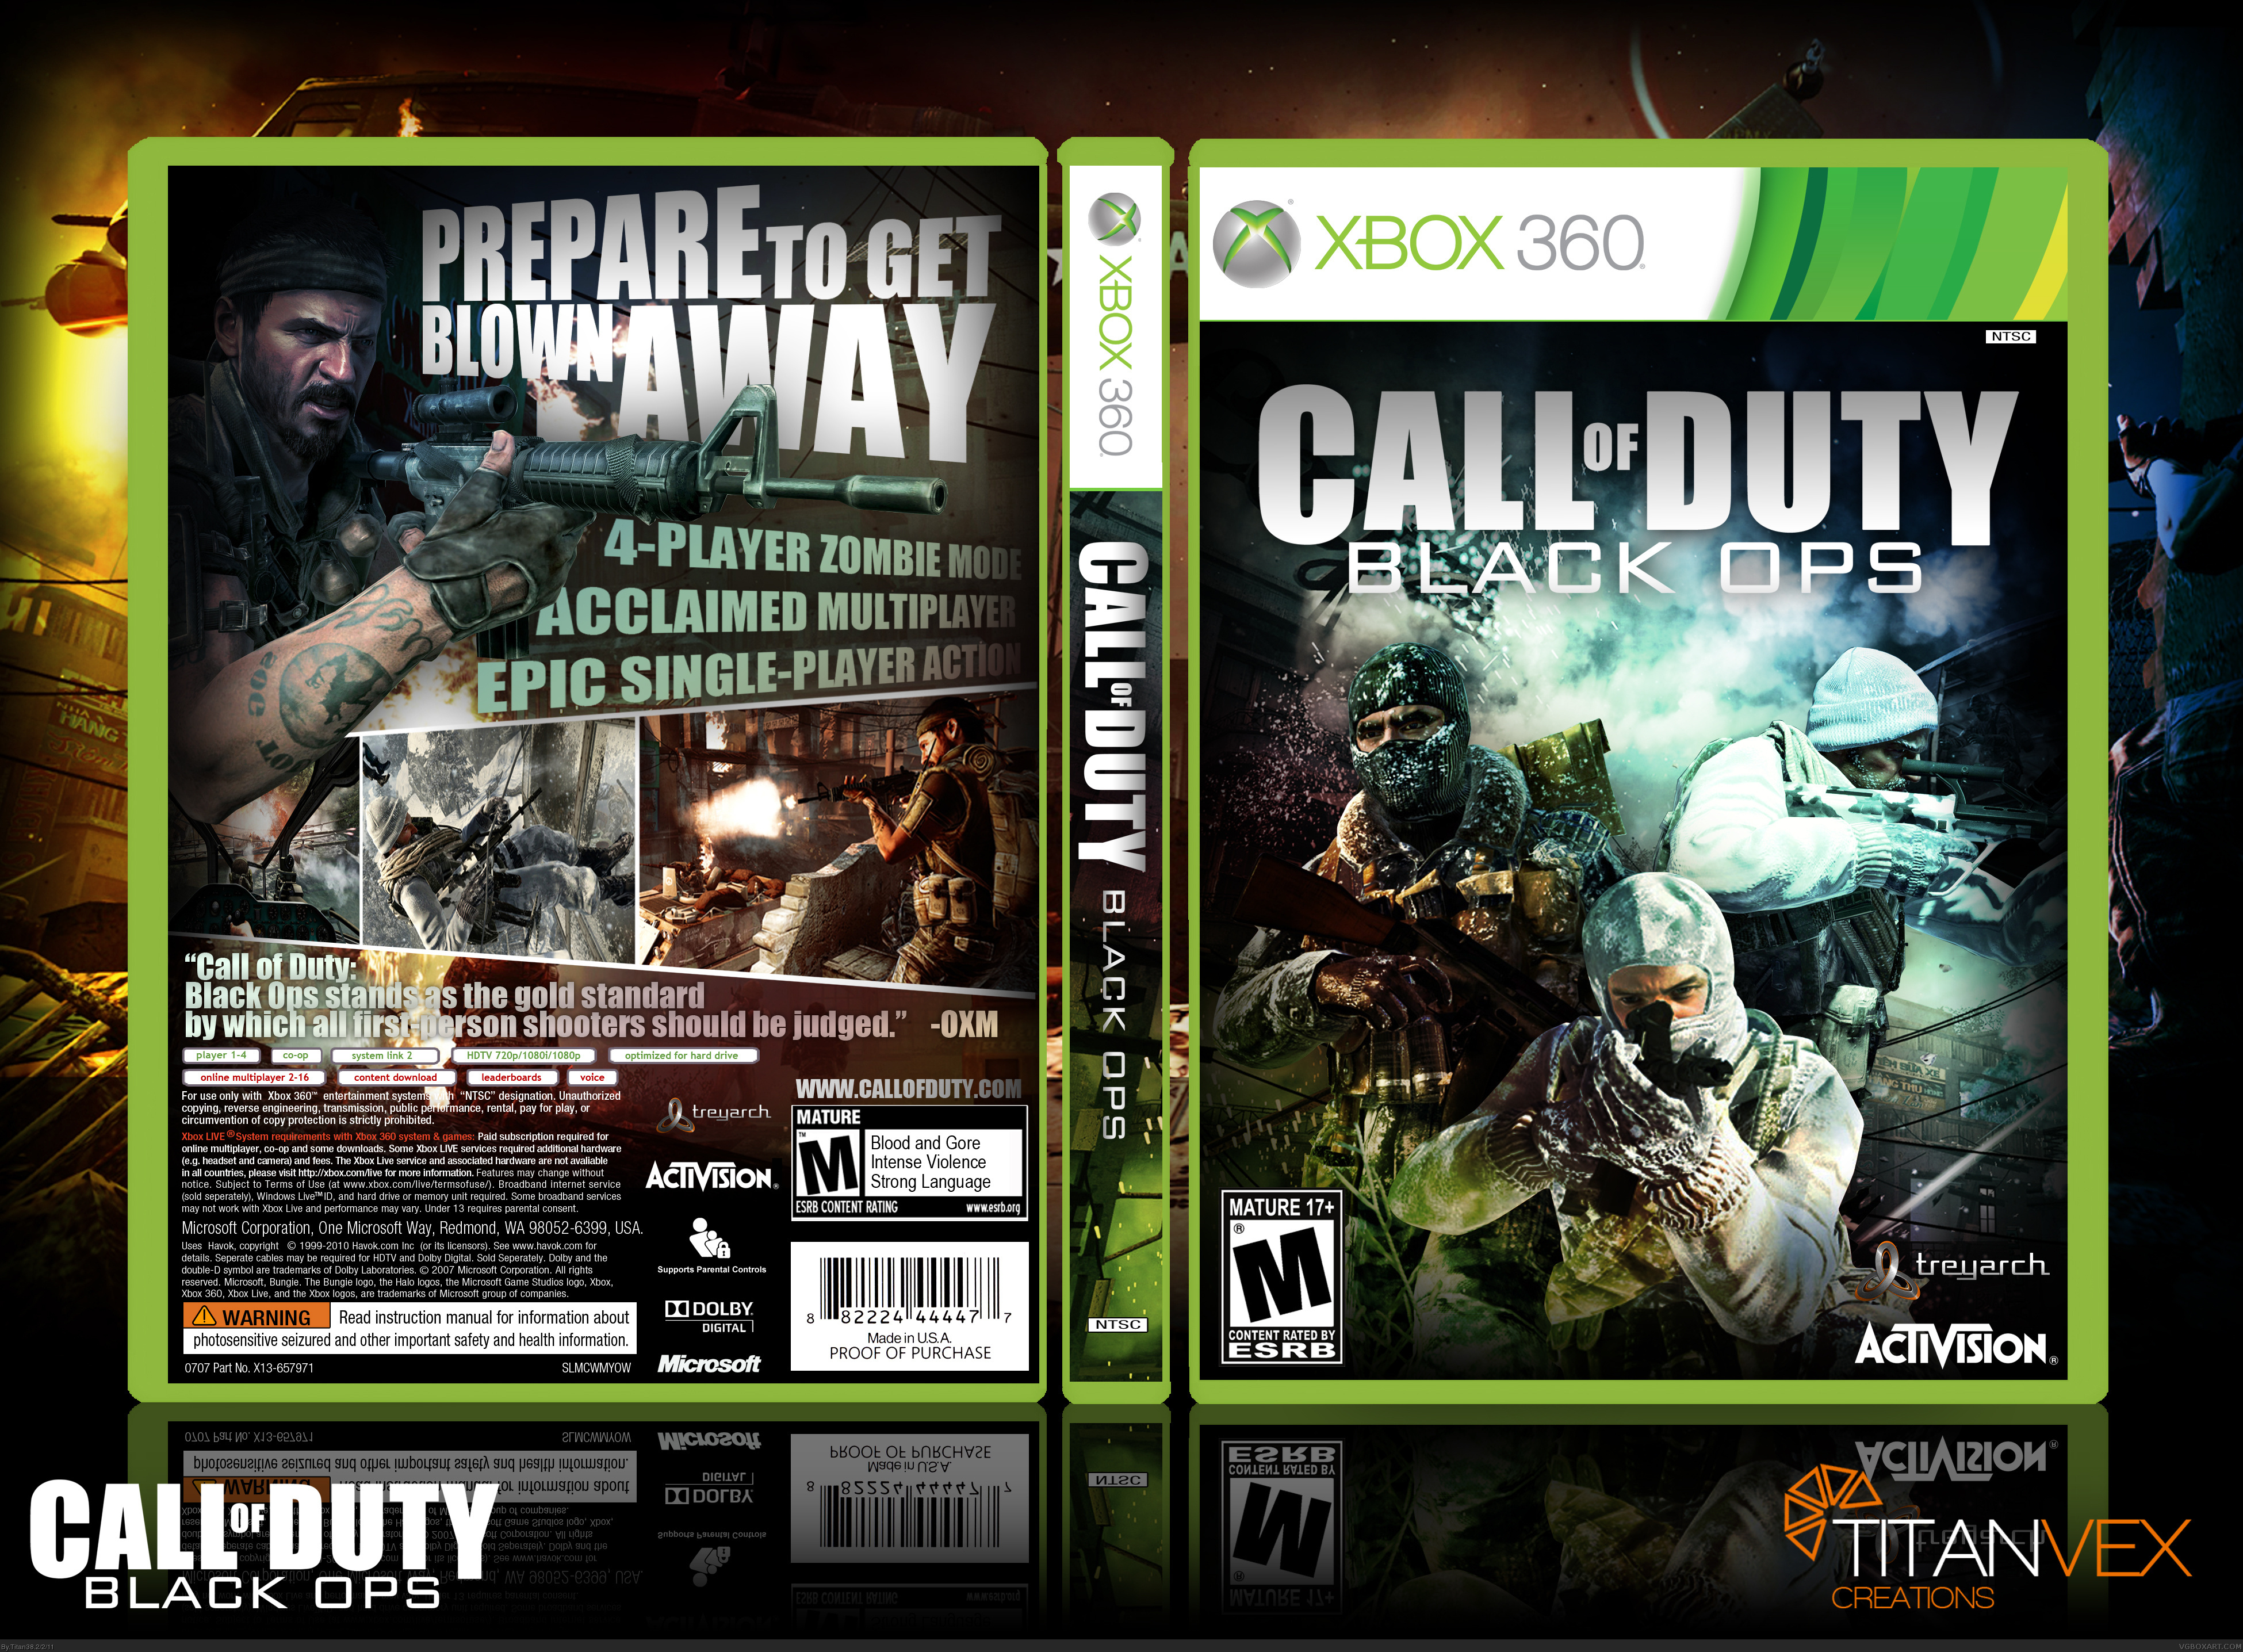 call of duty black ops xbox 360 box art cover by titan38